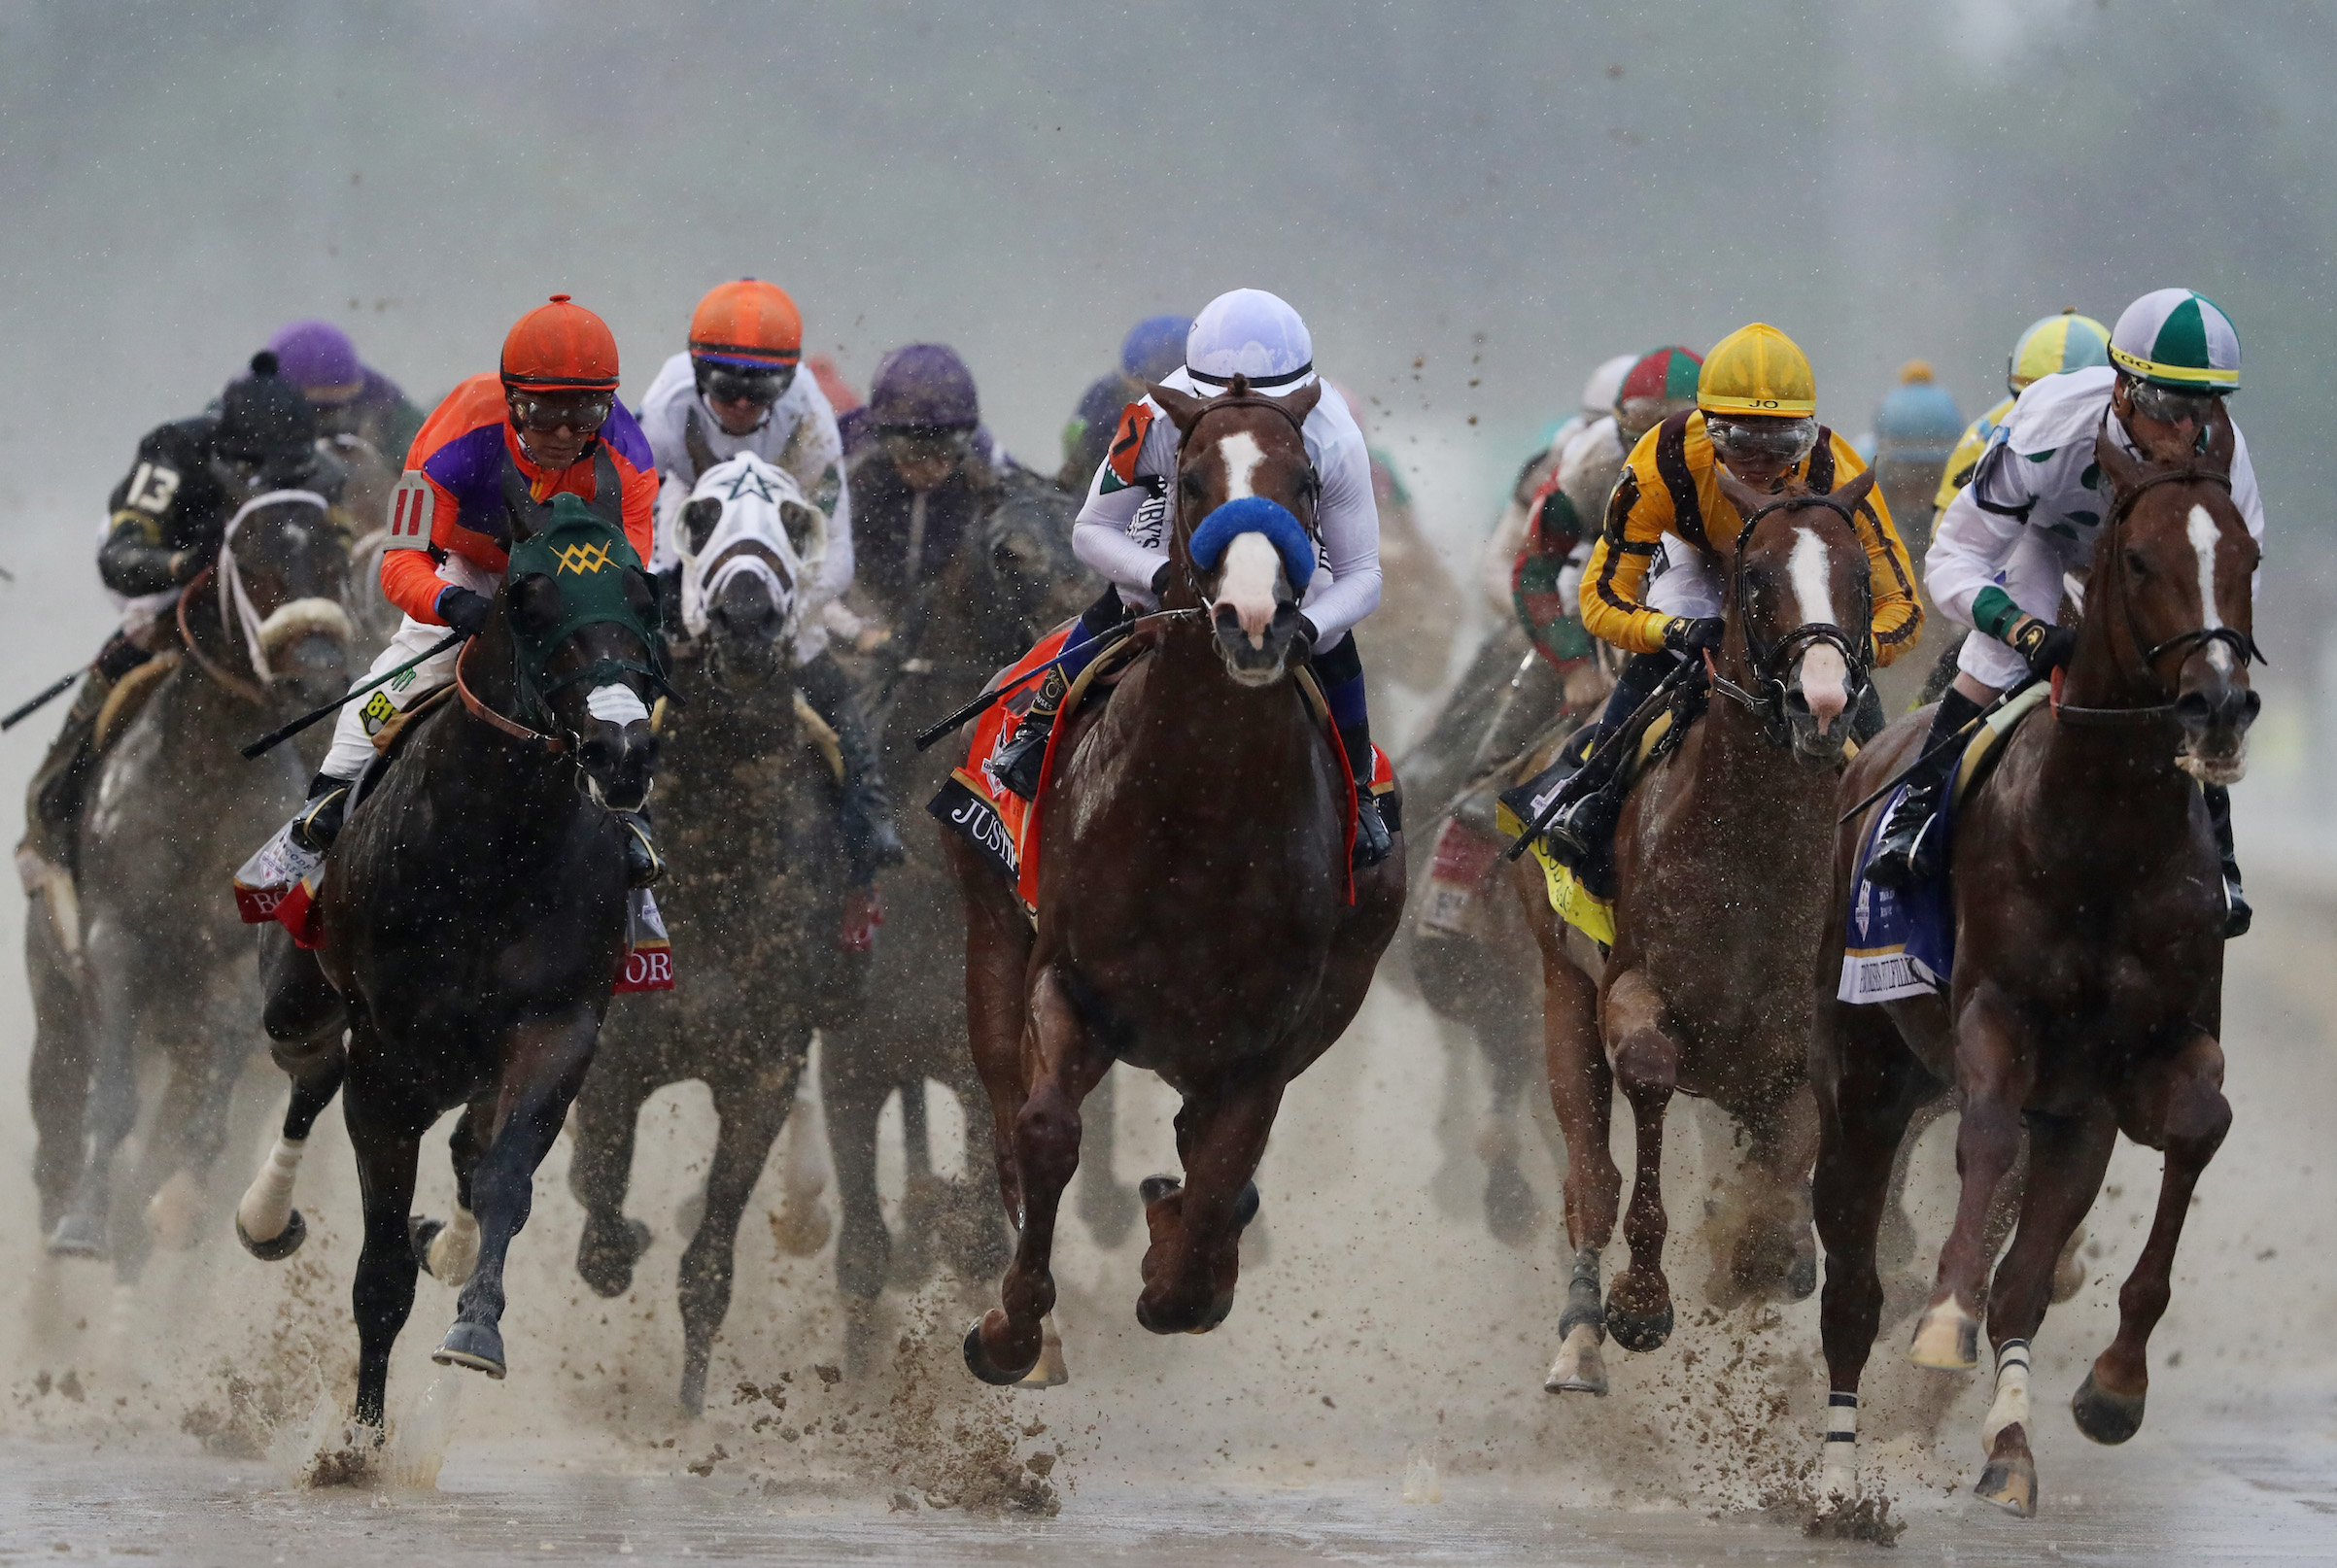 The 144th running of the Kentucky Derby at Churchill Downs on May 5, 2018 in Louisville, Ky.